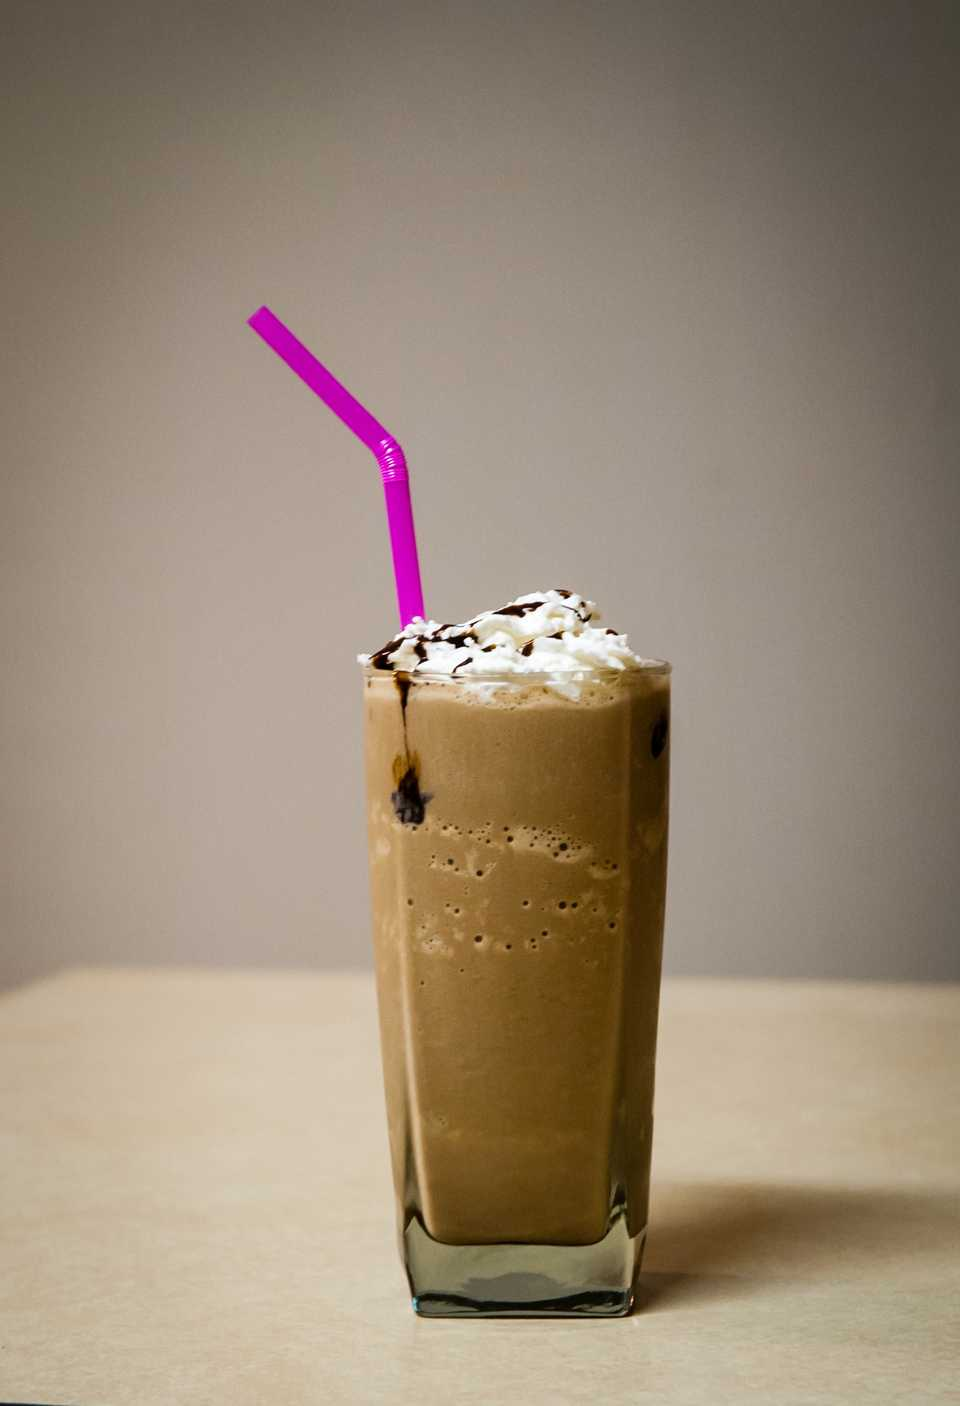 Cold coffee with a straw